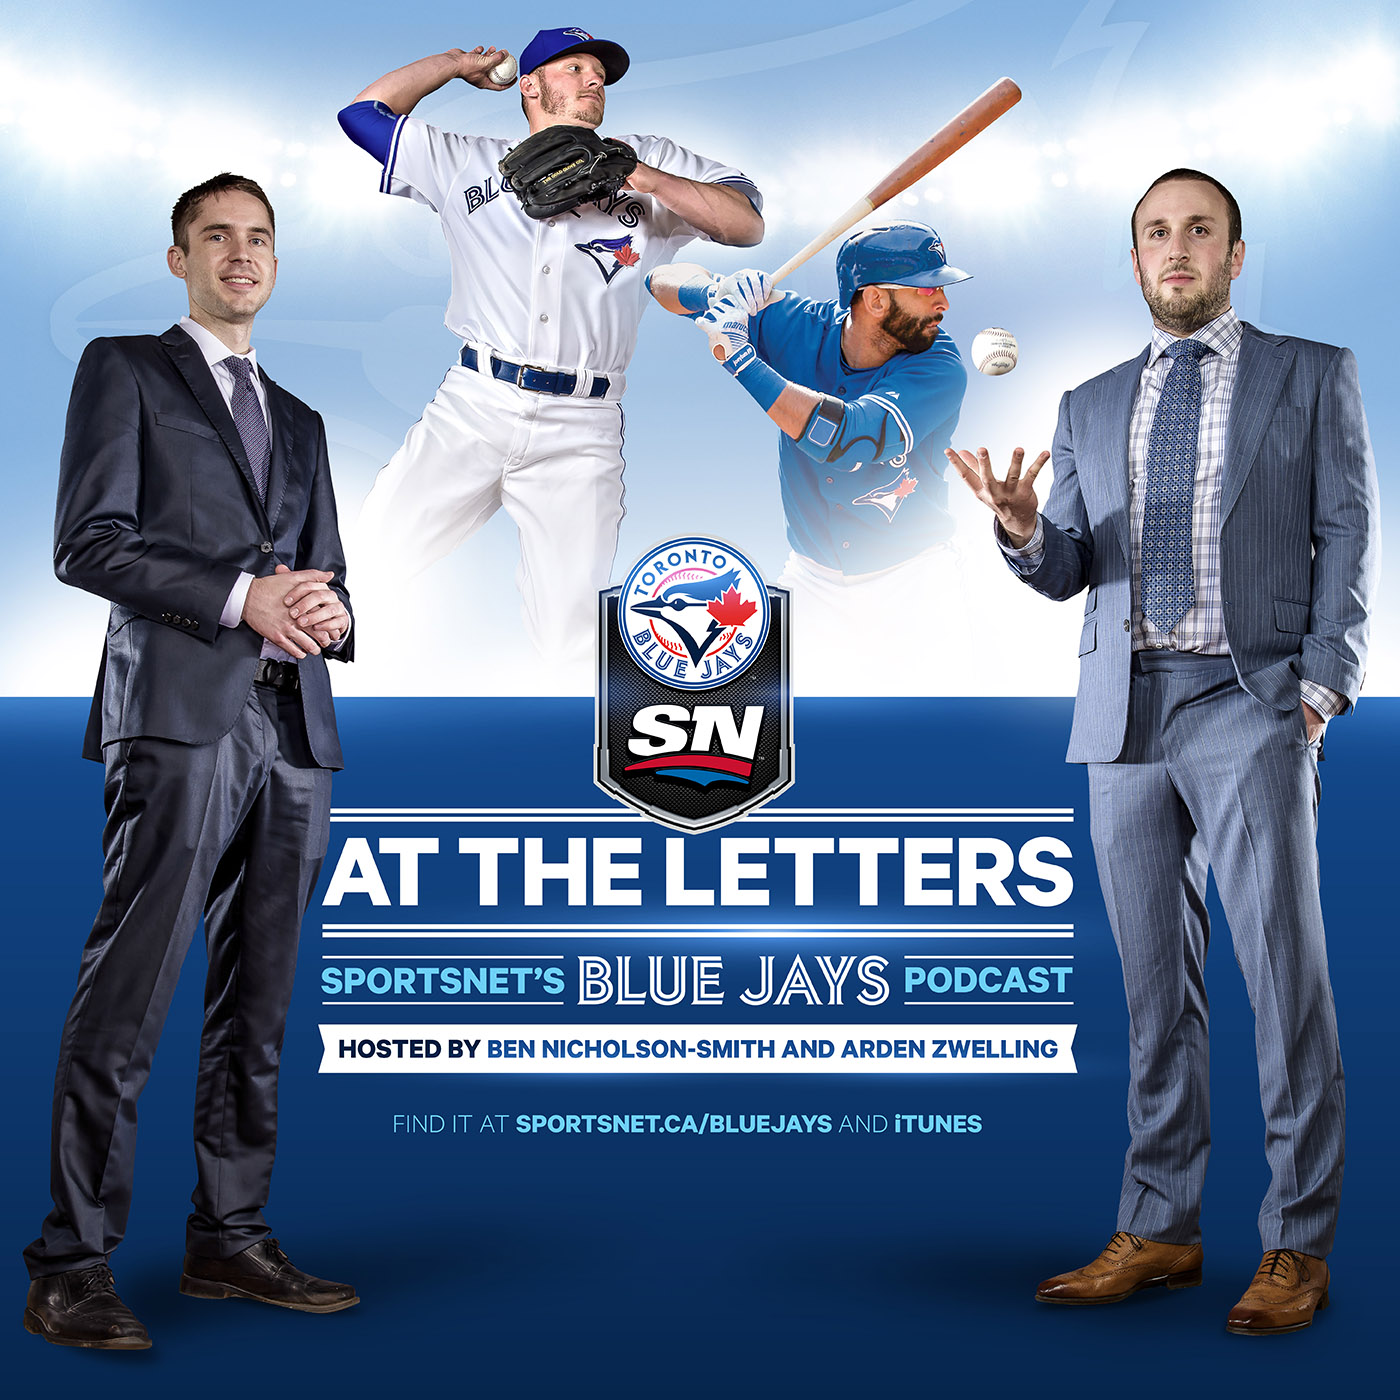 At The Letters, Sportsnet's Toronto Blue Jays podcast